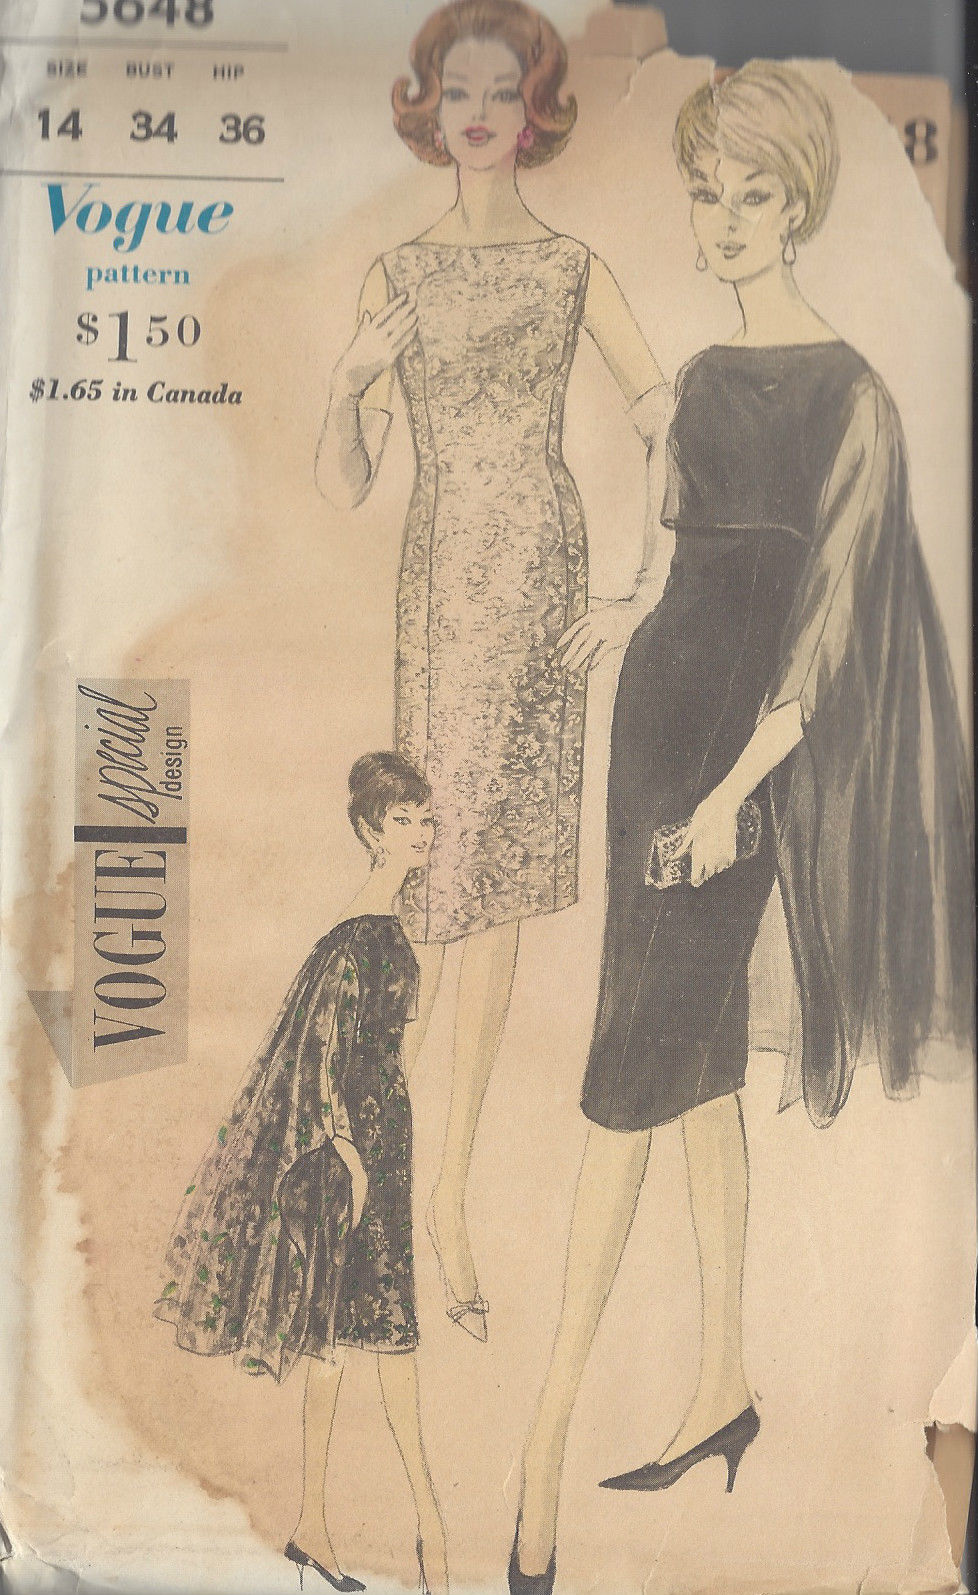 1960s Vintage Vogue Sewing Pattern Dress B34 Quot R599 The